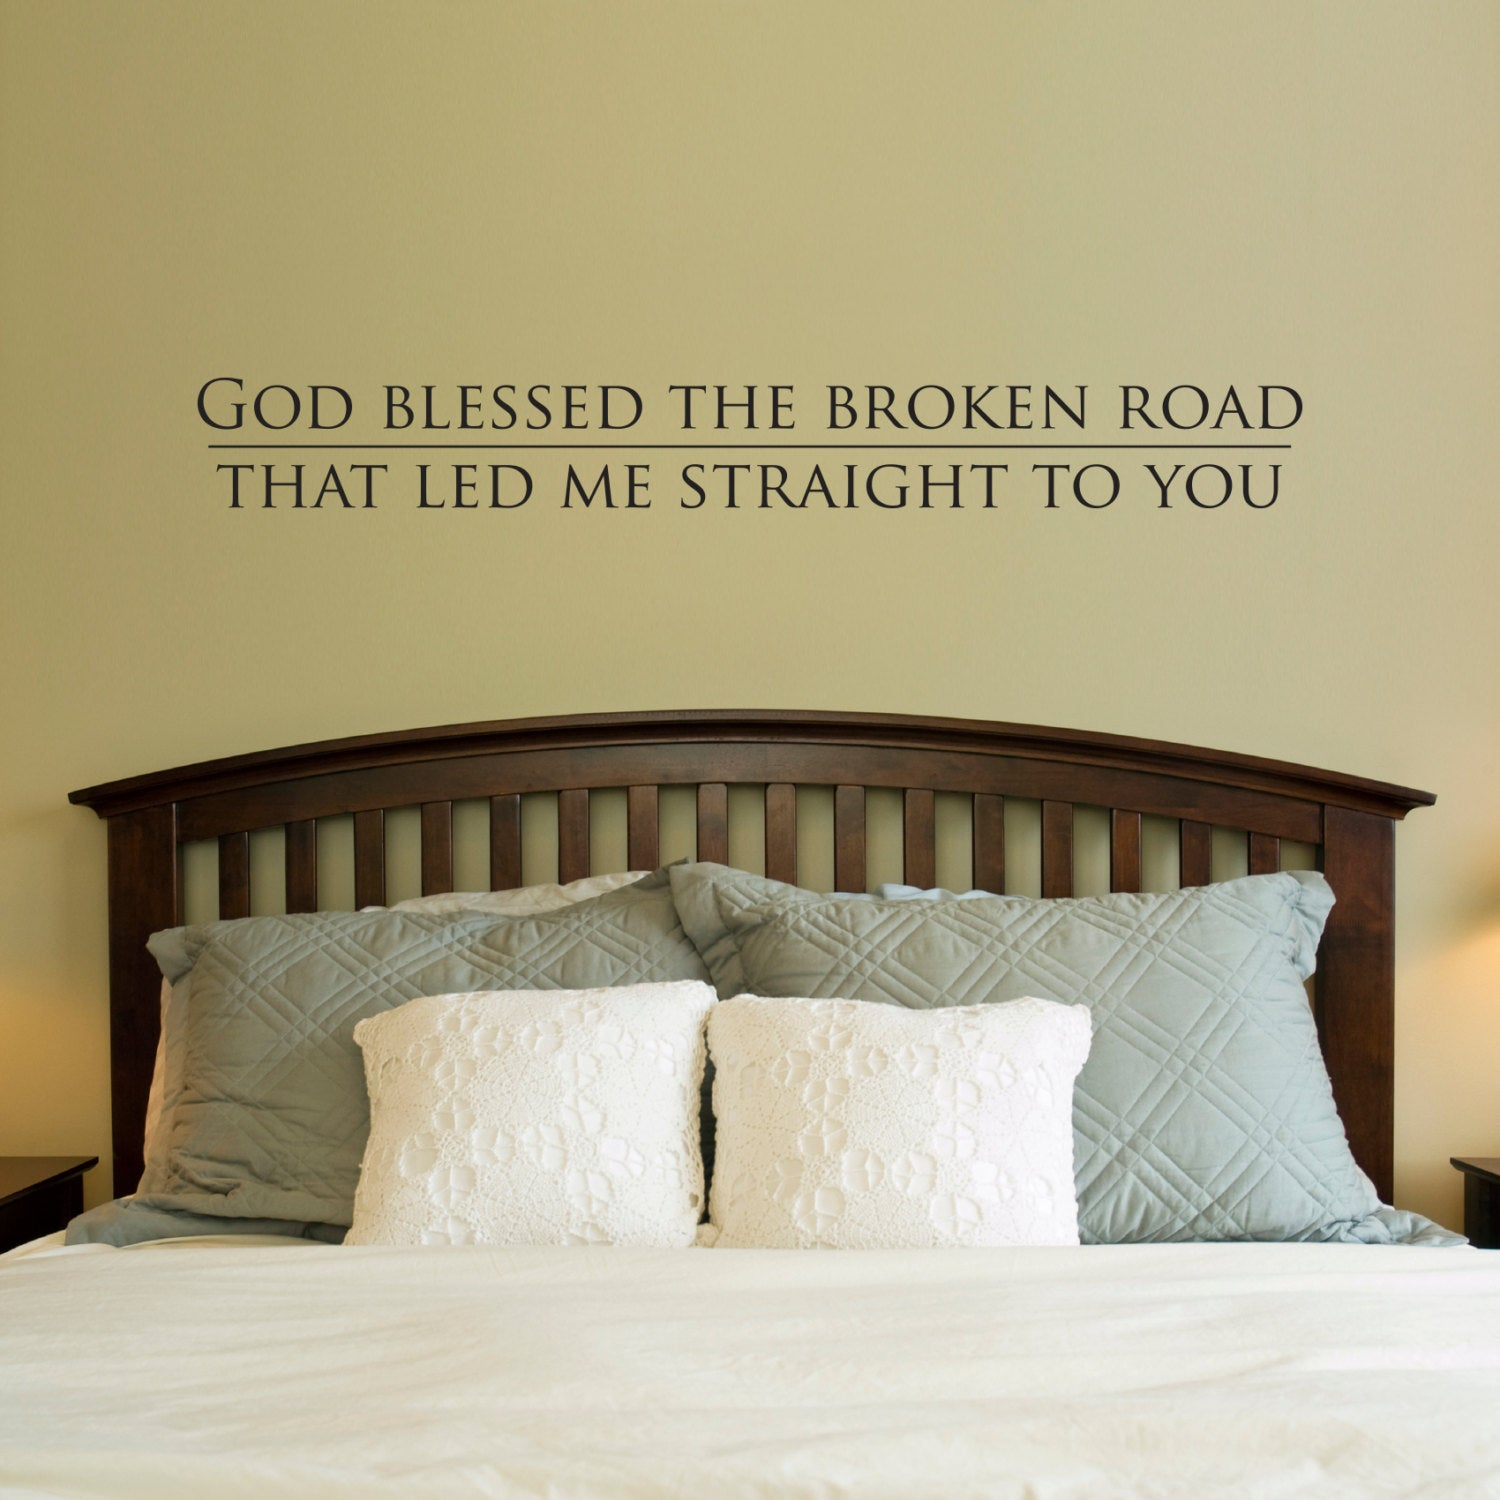 God Blessed The Broken Road Decal   Wall Decal Quote   Bedroom Decal    Stephen Edward Graphics